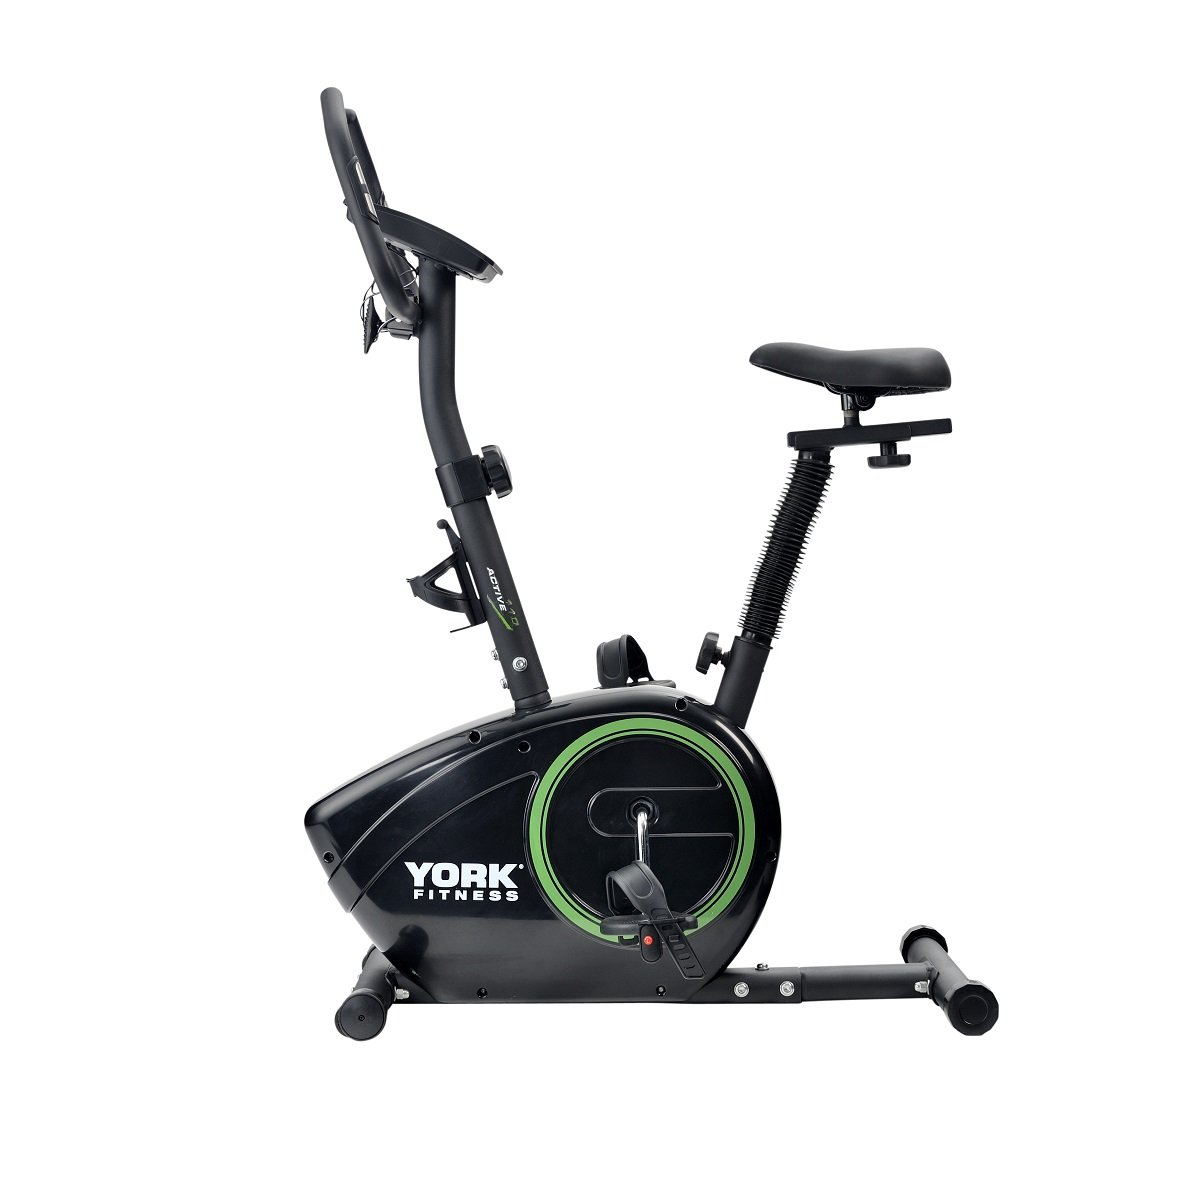 York Exercise Bike Reviews